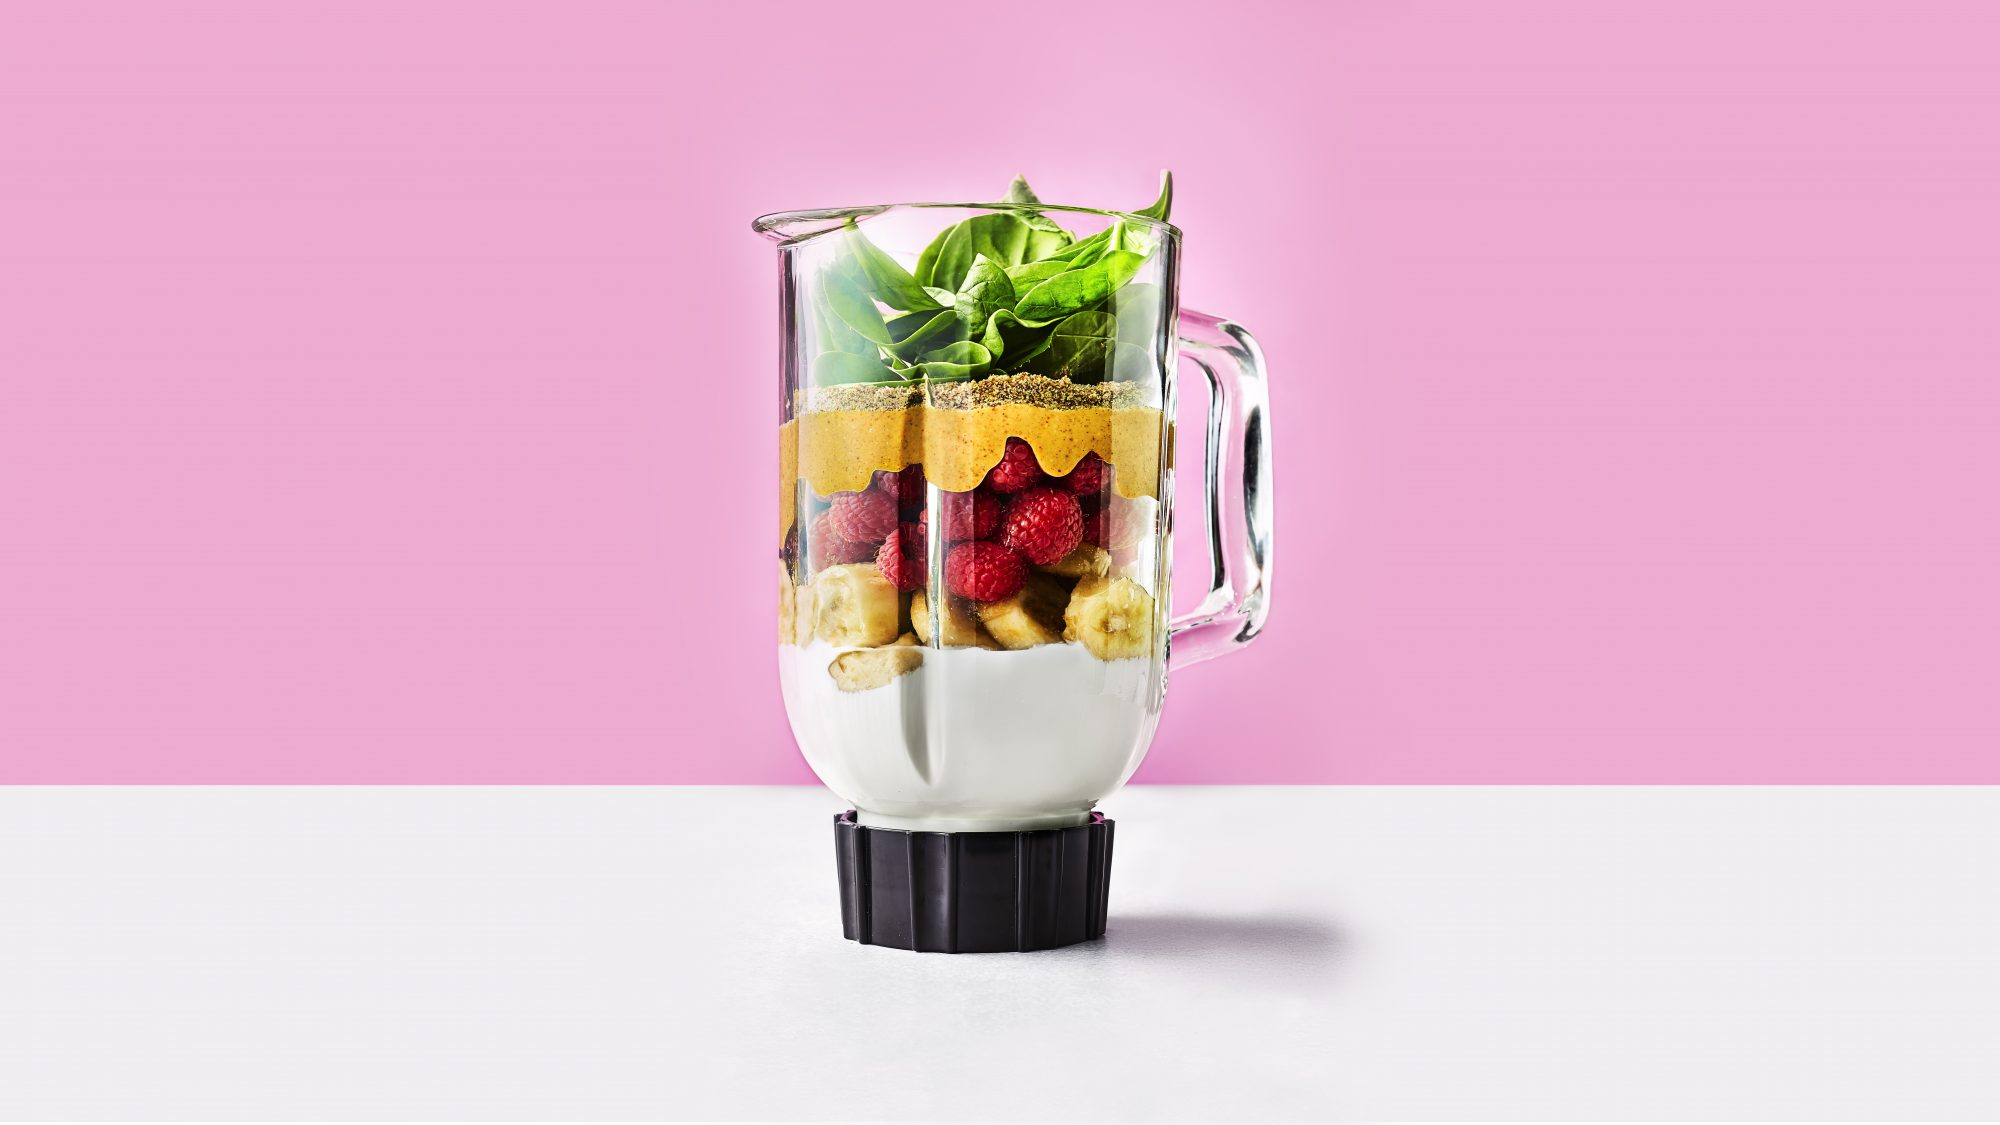 smoothie blend blender woman health nutrition diet food